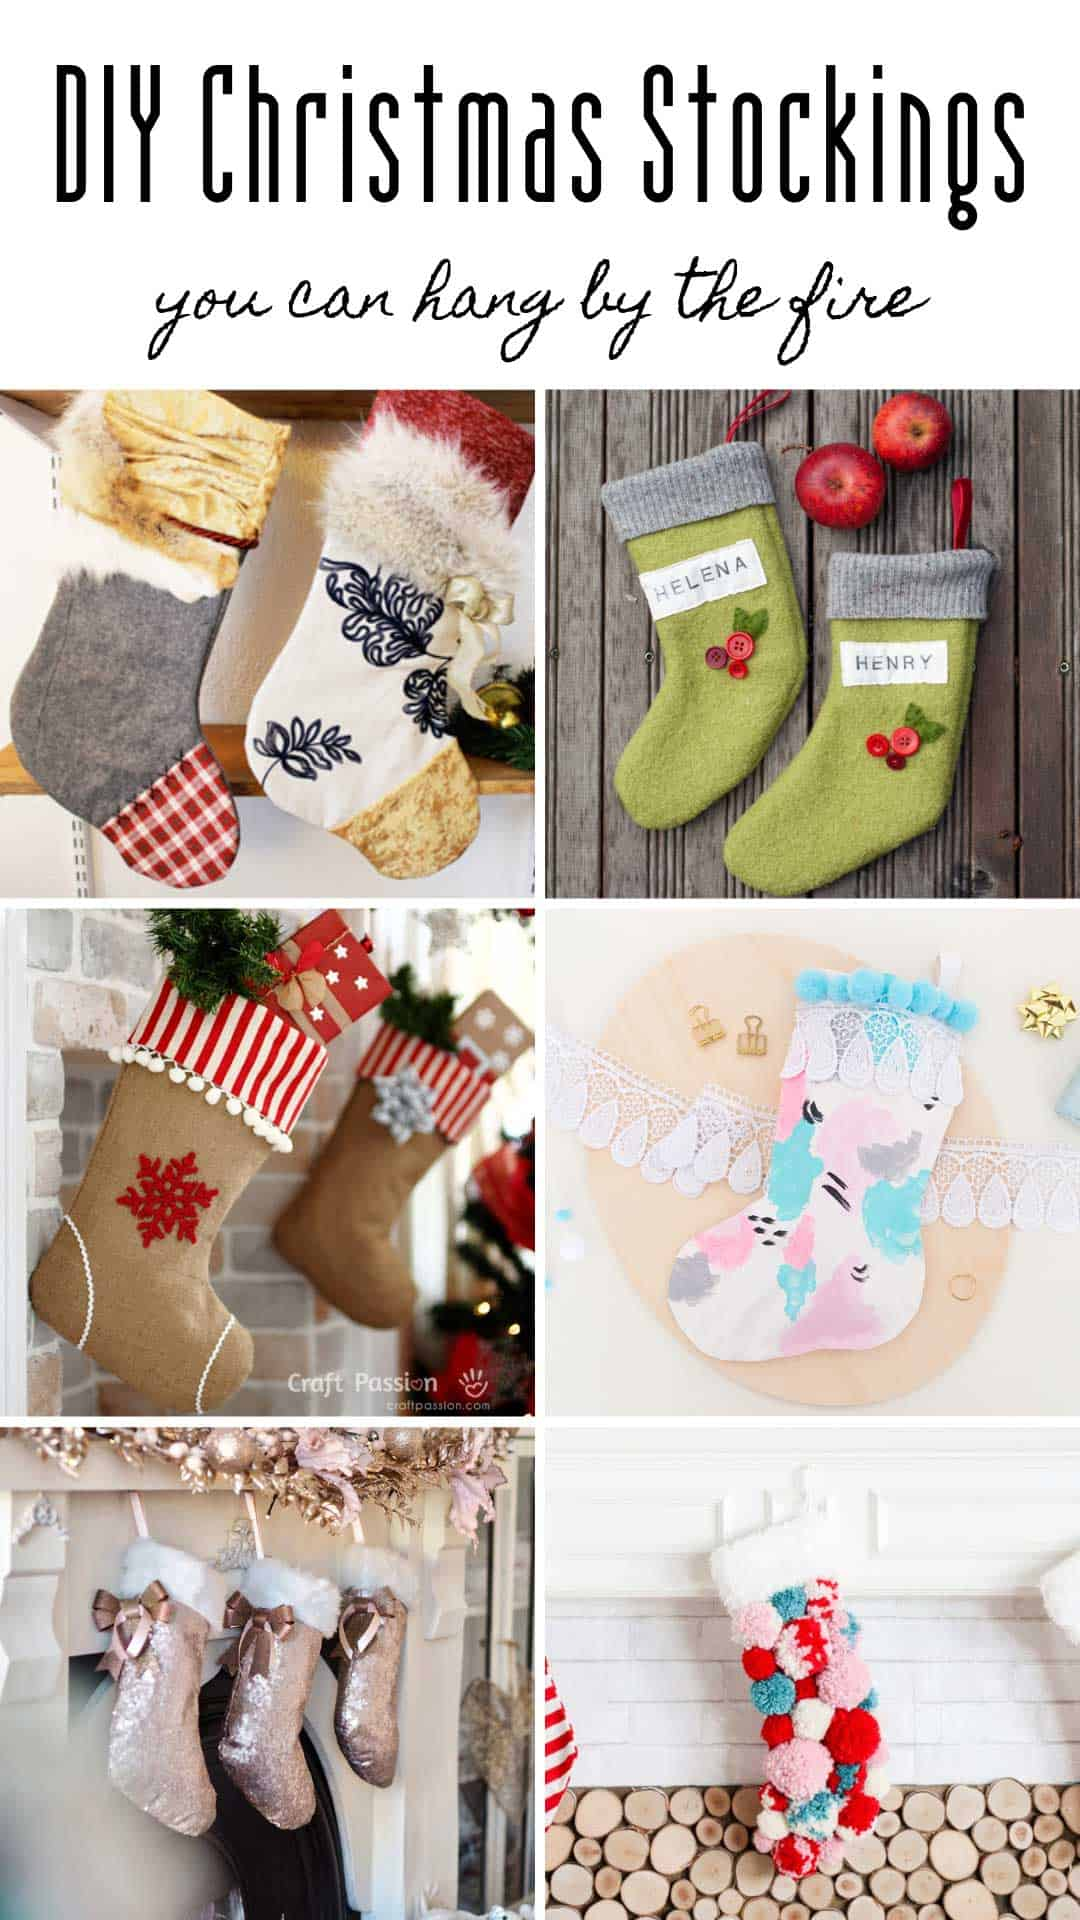 Festive up your fireplace with these DIY Christmas stockings - homemade gifts for all the family!